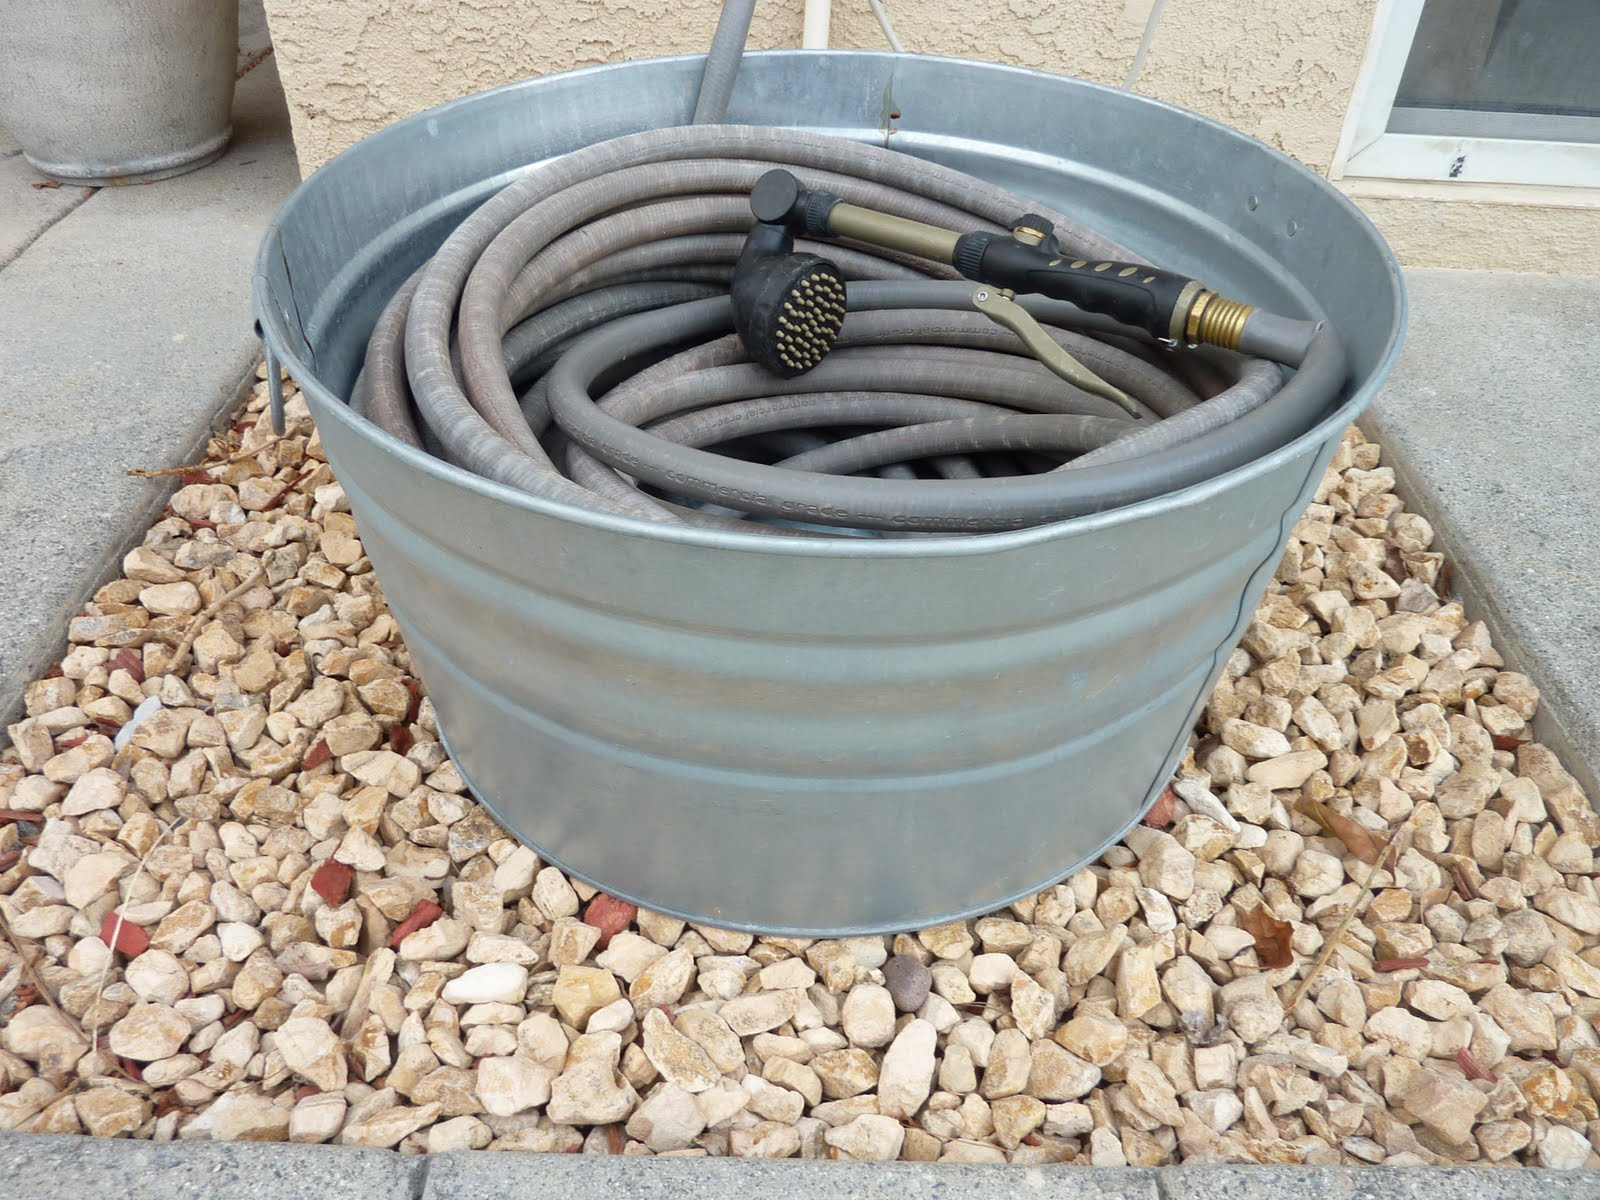 Garden Hose Storage Ideas holds garden hose 7 Galvanized Wash Tub